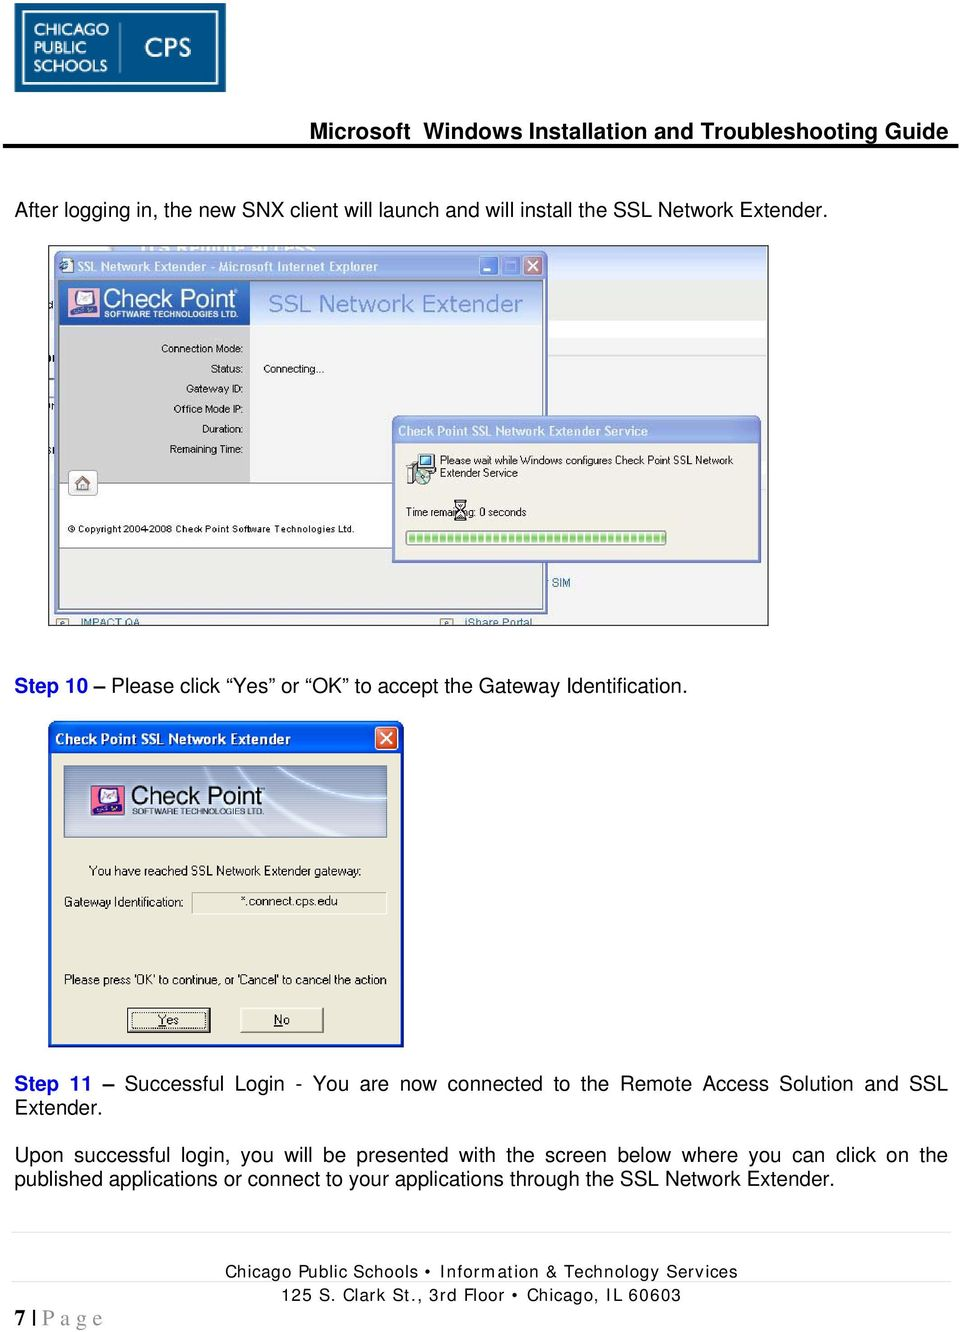 Step 11 Successful Login - You are now connected to the Remote Access Solution and SSL Extender.